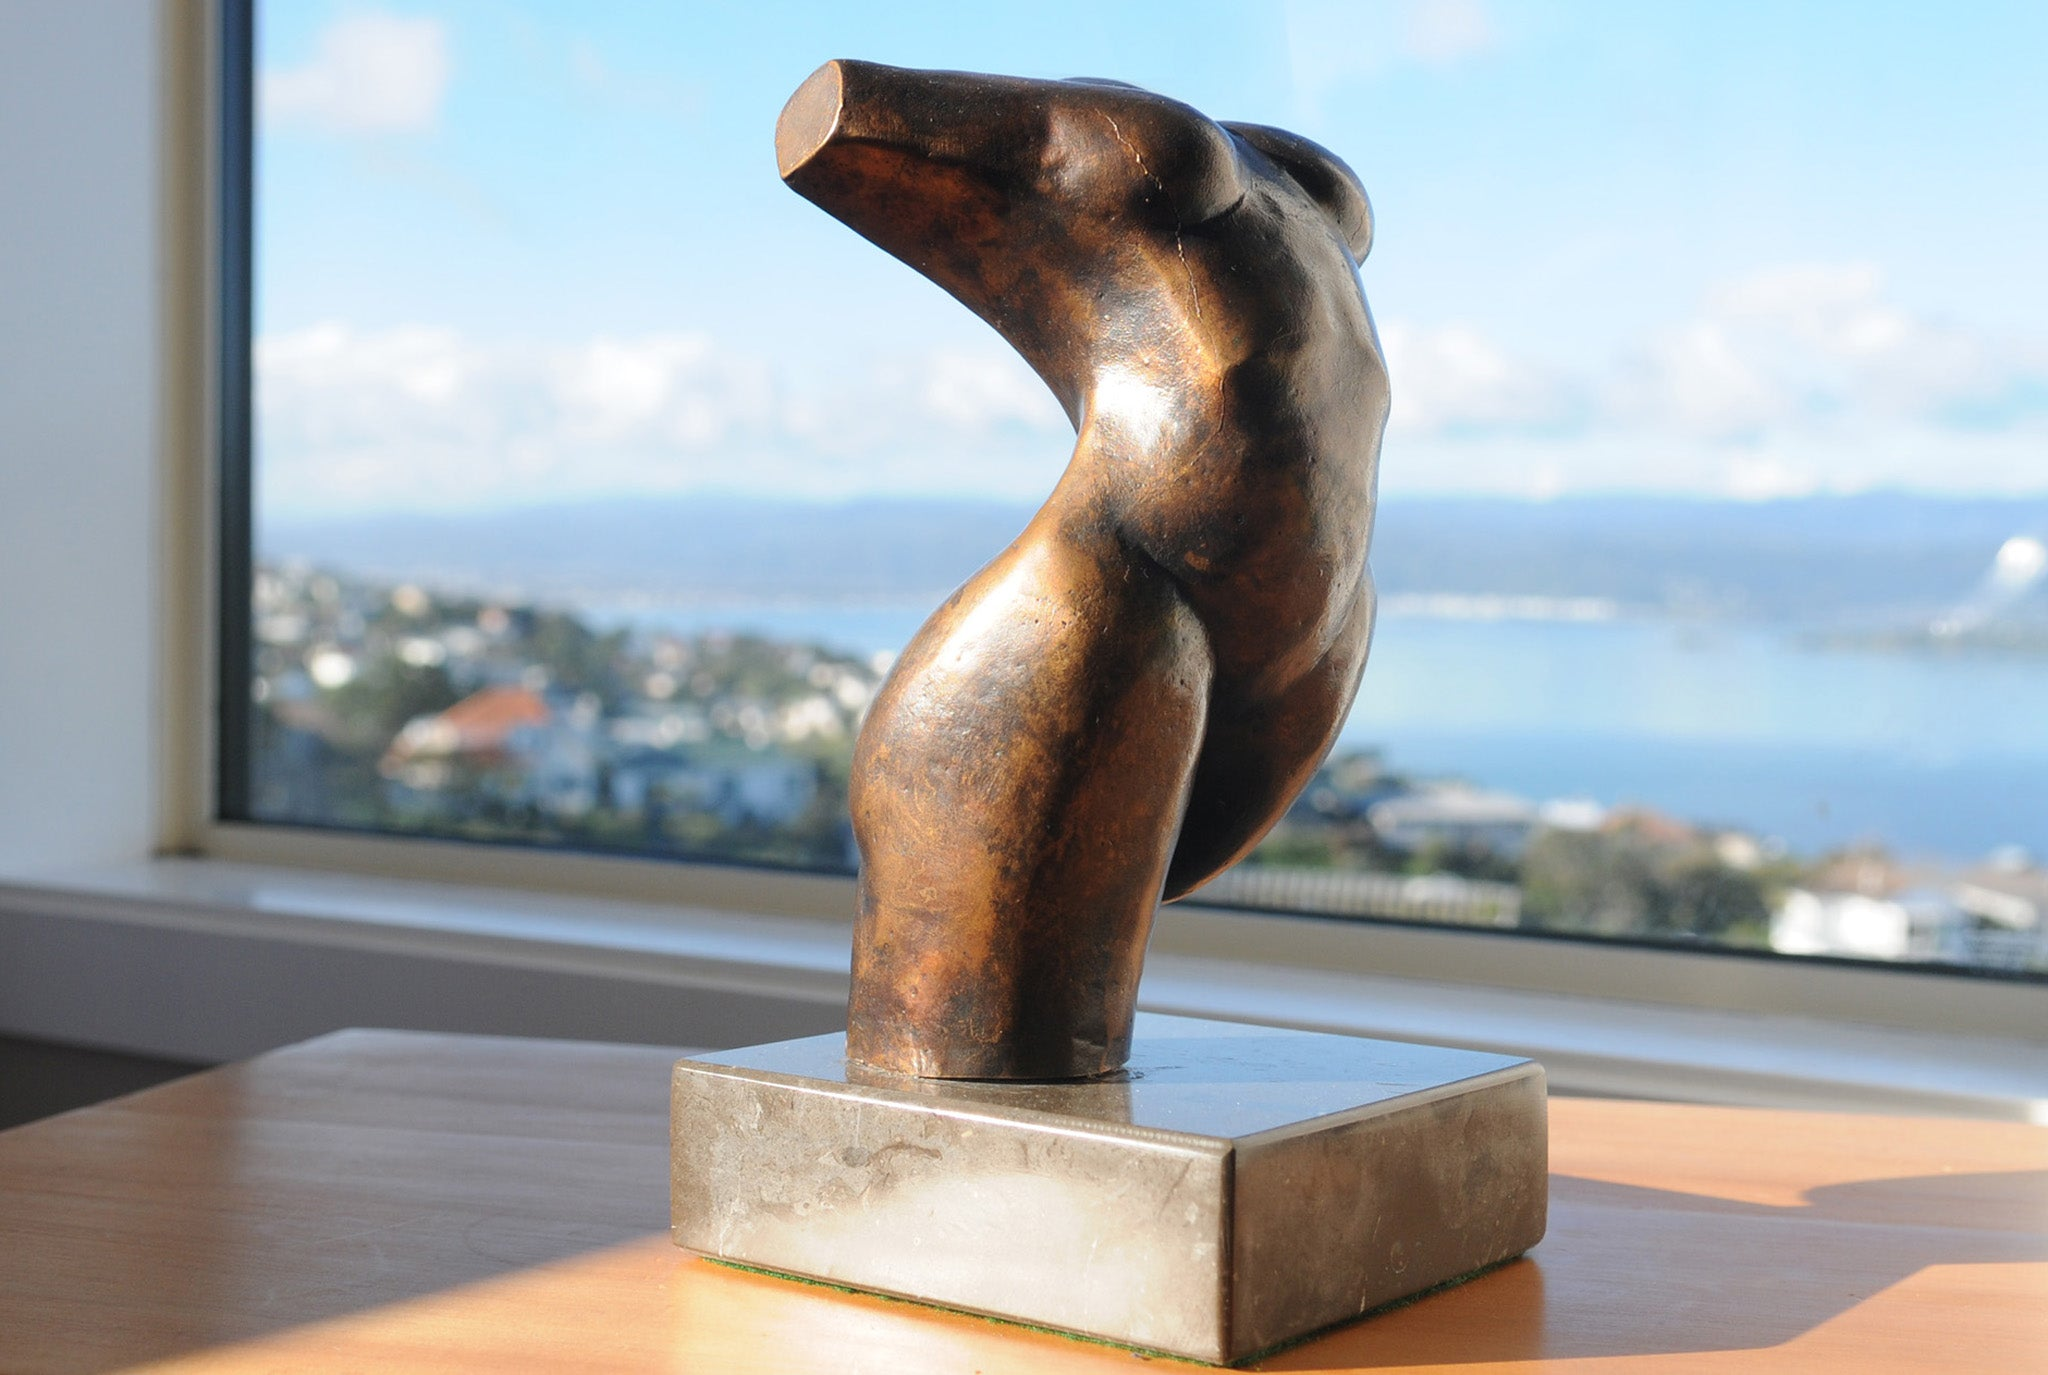 Abstract figurative bronze sculpture by Stephen Williams.